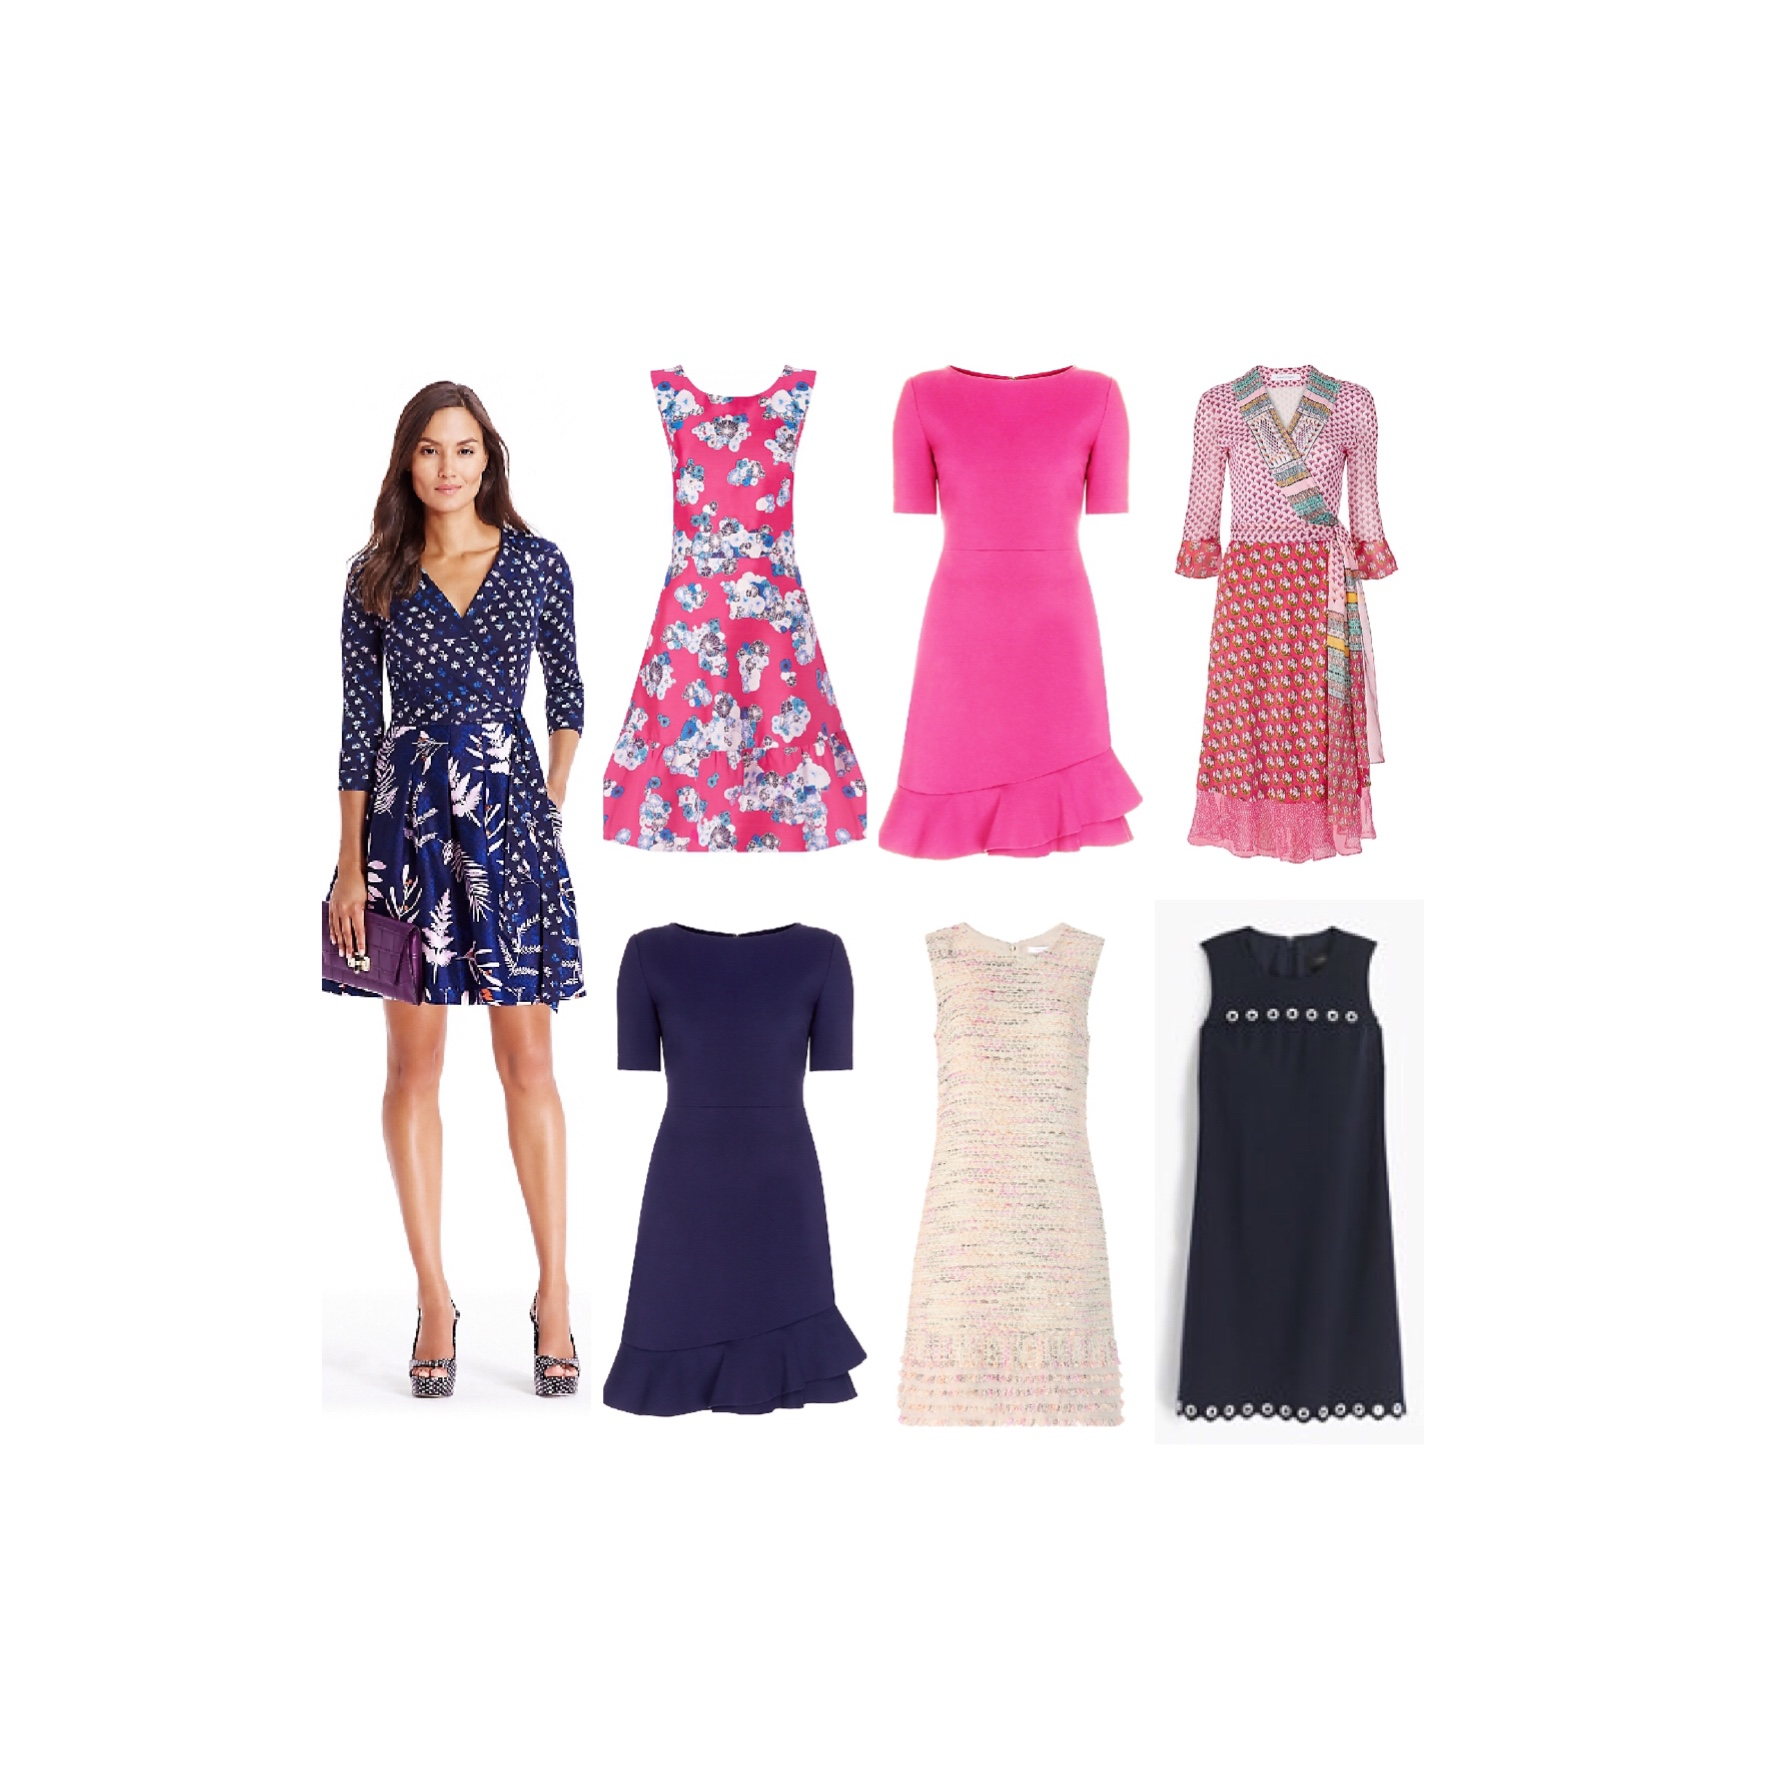 The dress and beyond - Spring Dresses For Easter And Beyond The Lush List Dallas Lifestyle Fashion Blog